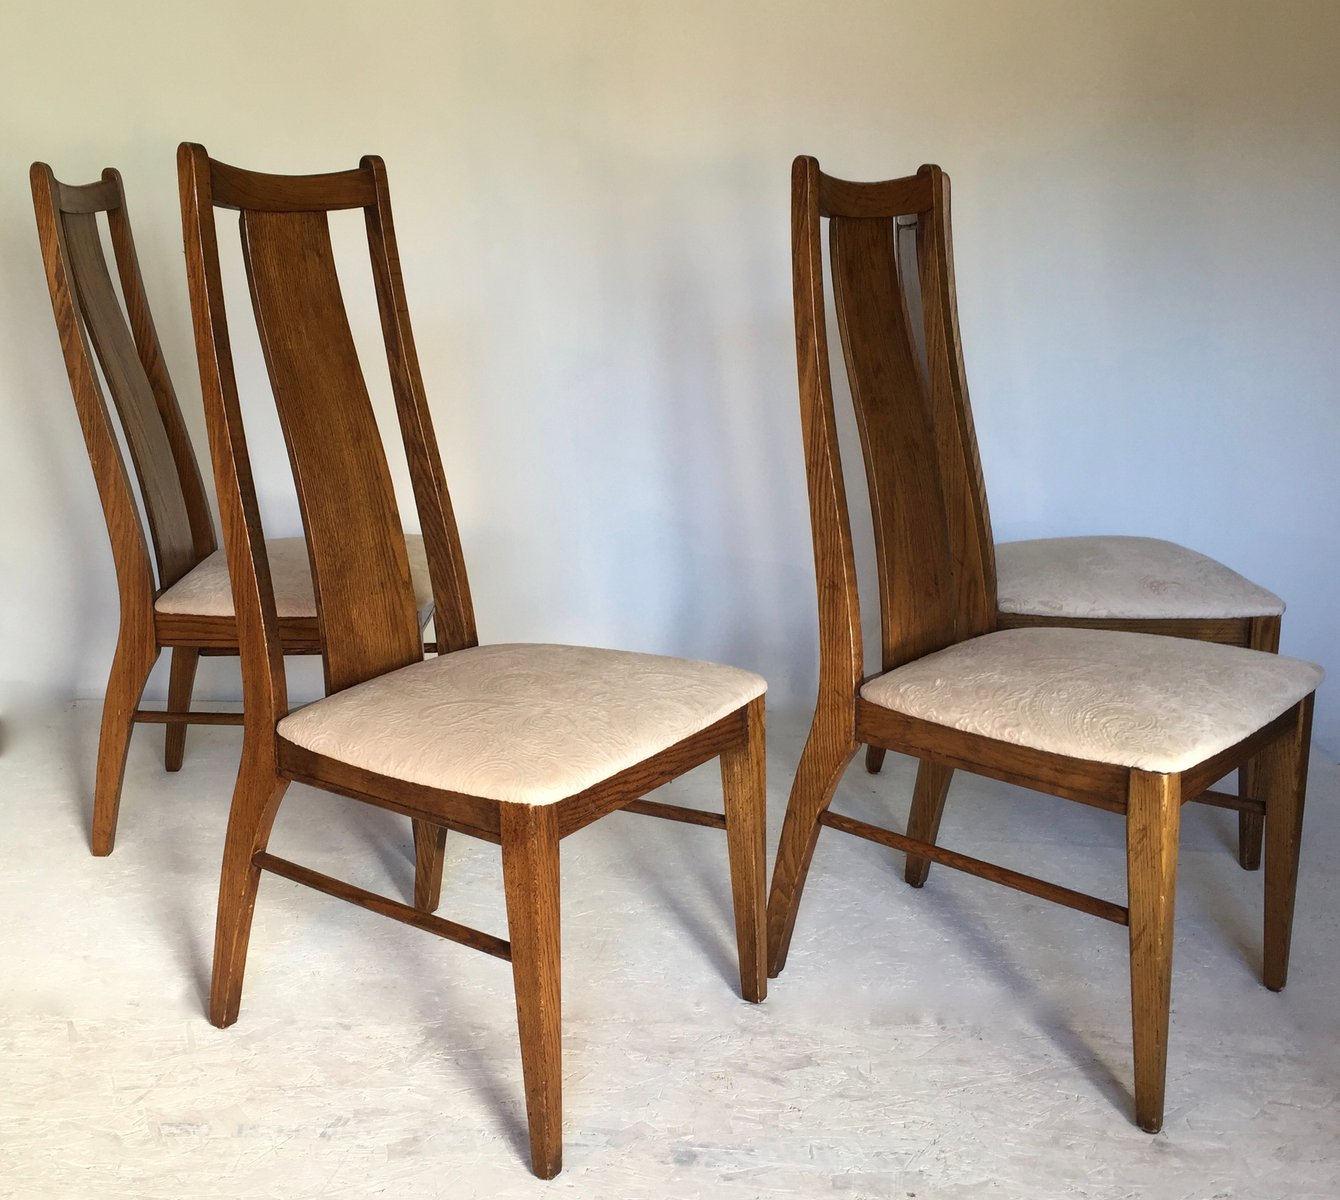 American Chairs From Garrison Furniture Company, 1960s